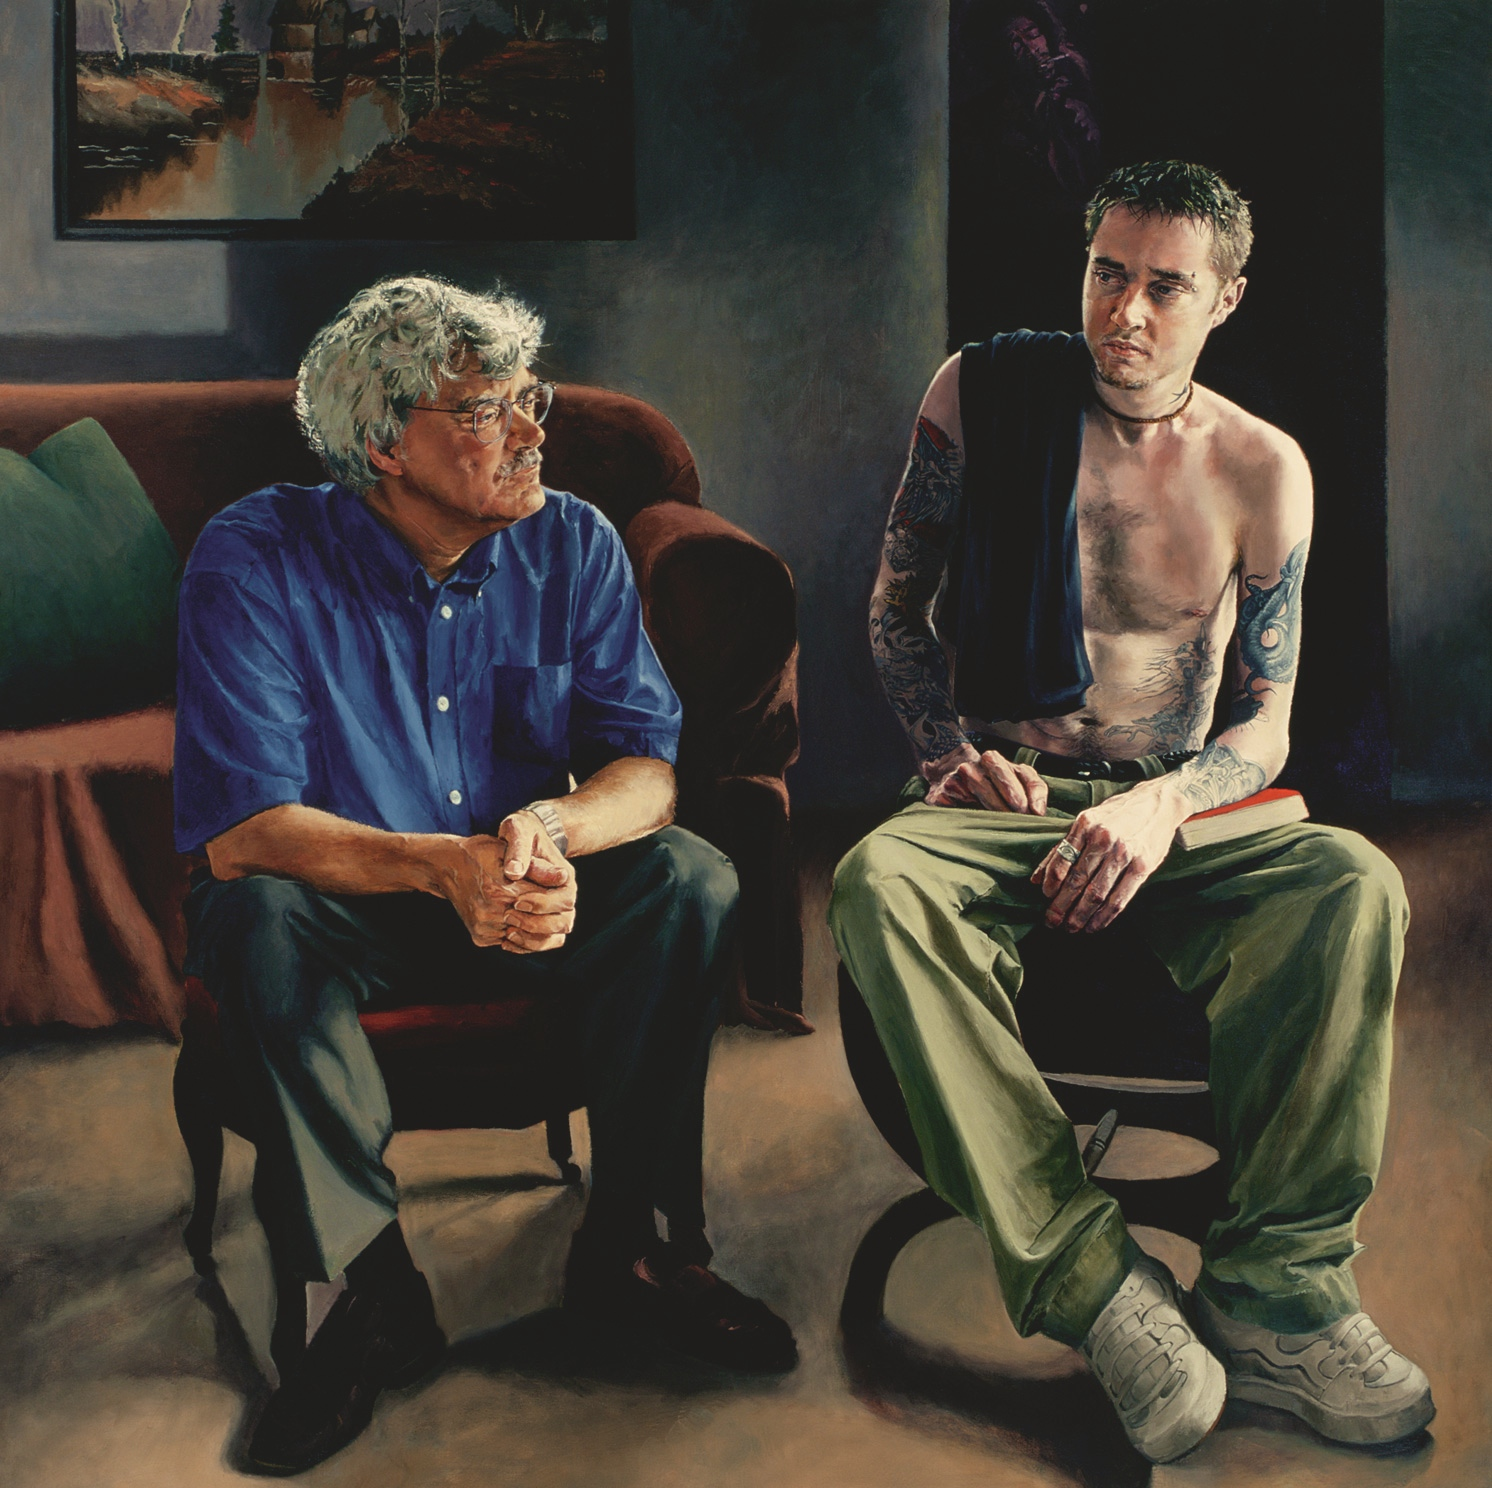 "Body and Mind: Kevin with Uncle Bill , Oil on Canvas, 2000, 68"" x 68"", Private Collection"